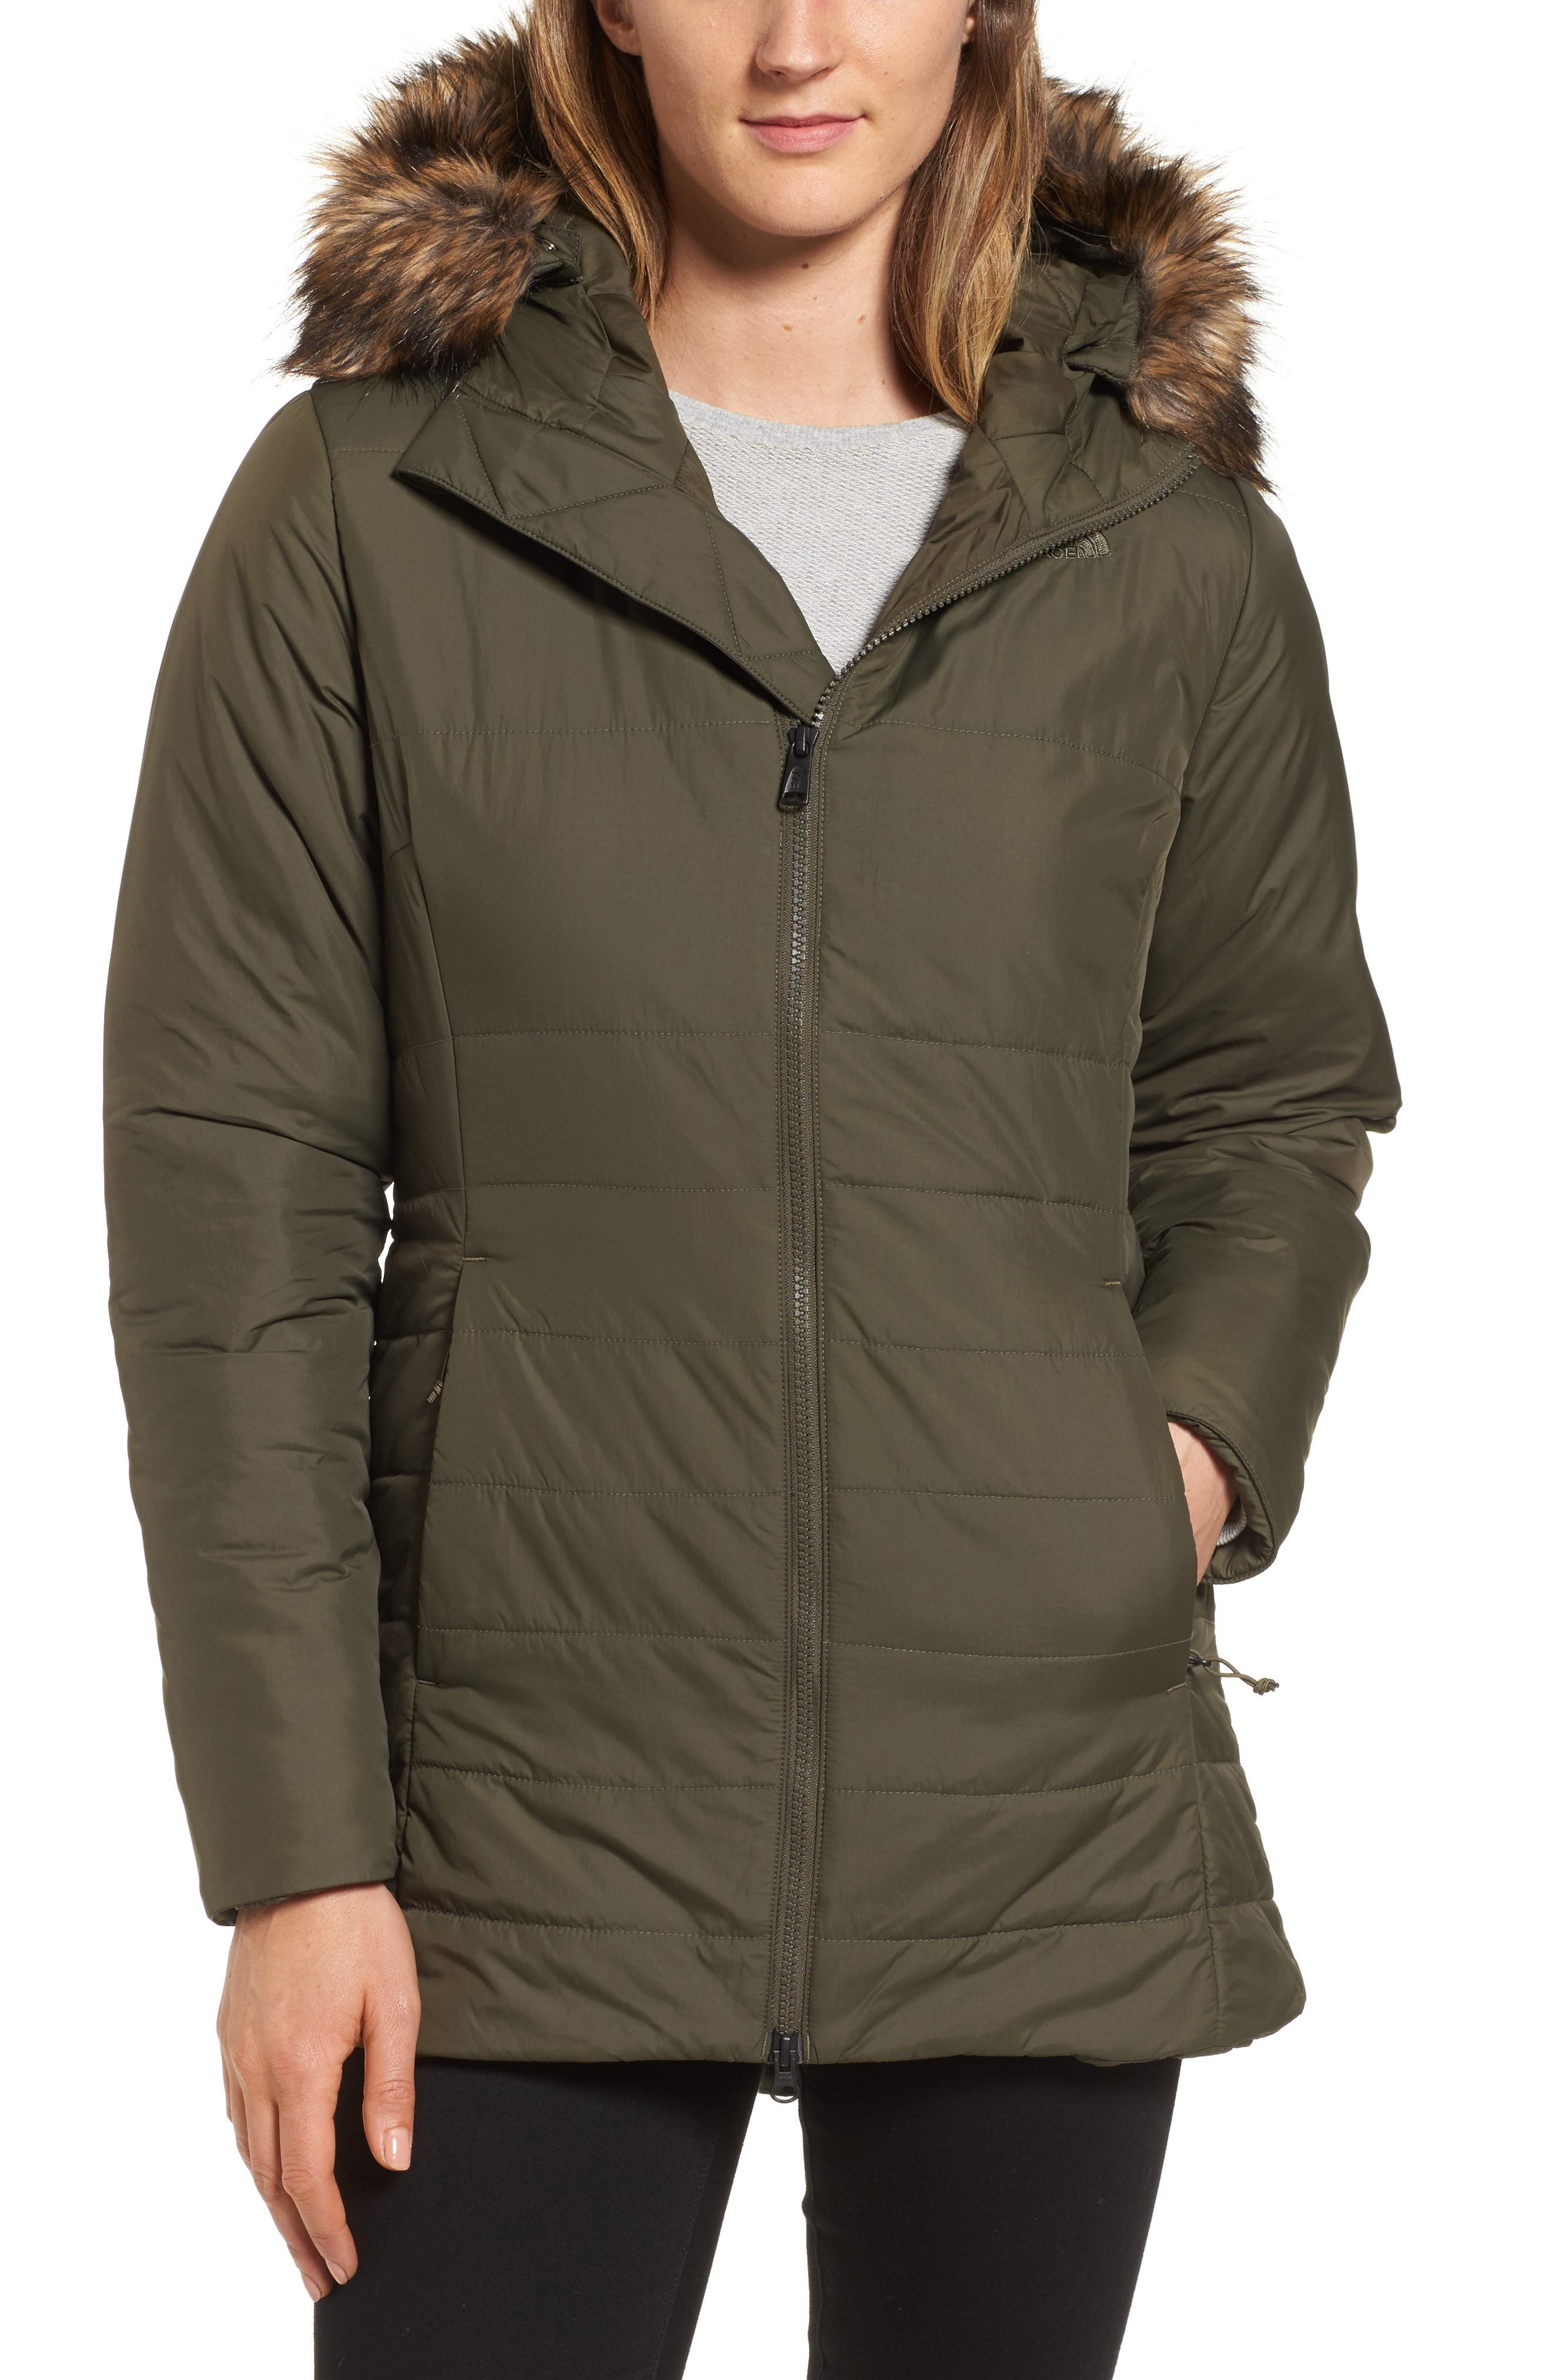 Harway Heatseeker<sup>™</sup> Water-Resistant Jacket with Faux Fur Trim,                         Main,                         color, New Taupe Green